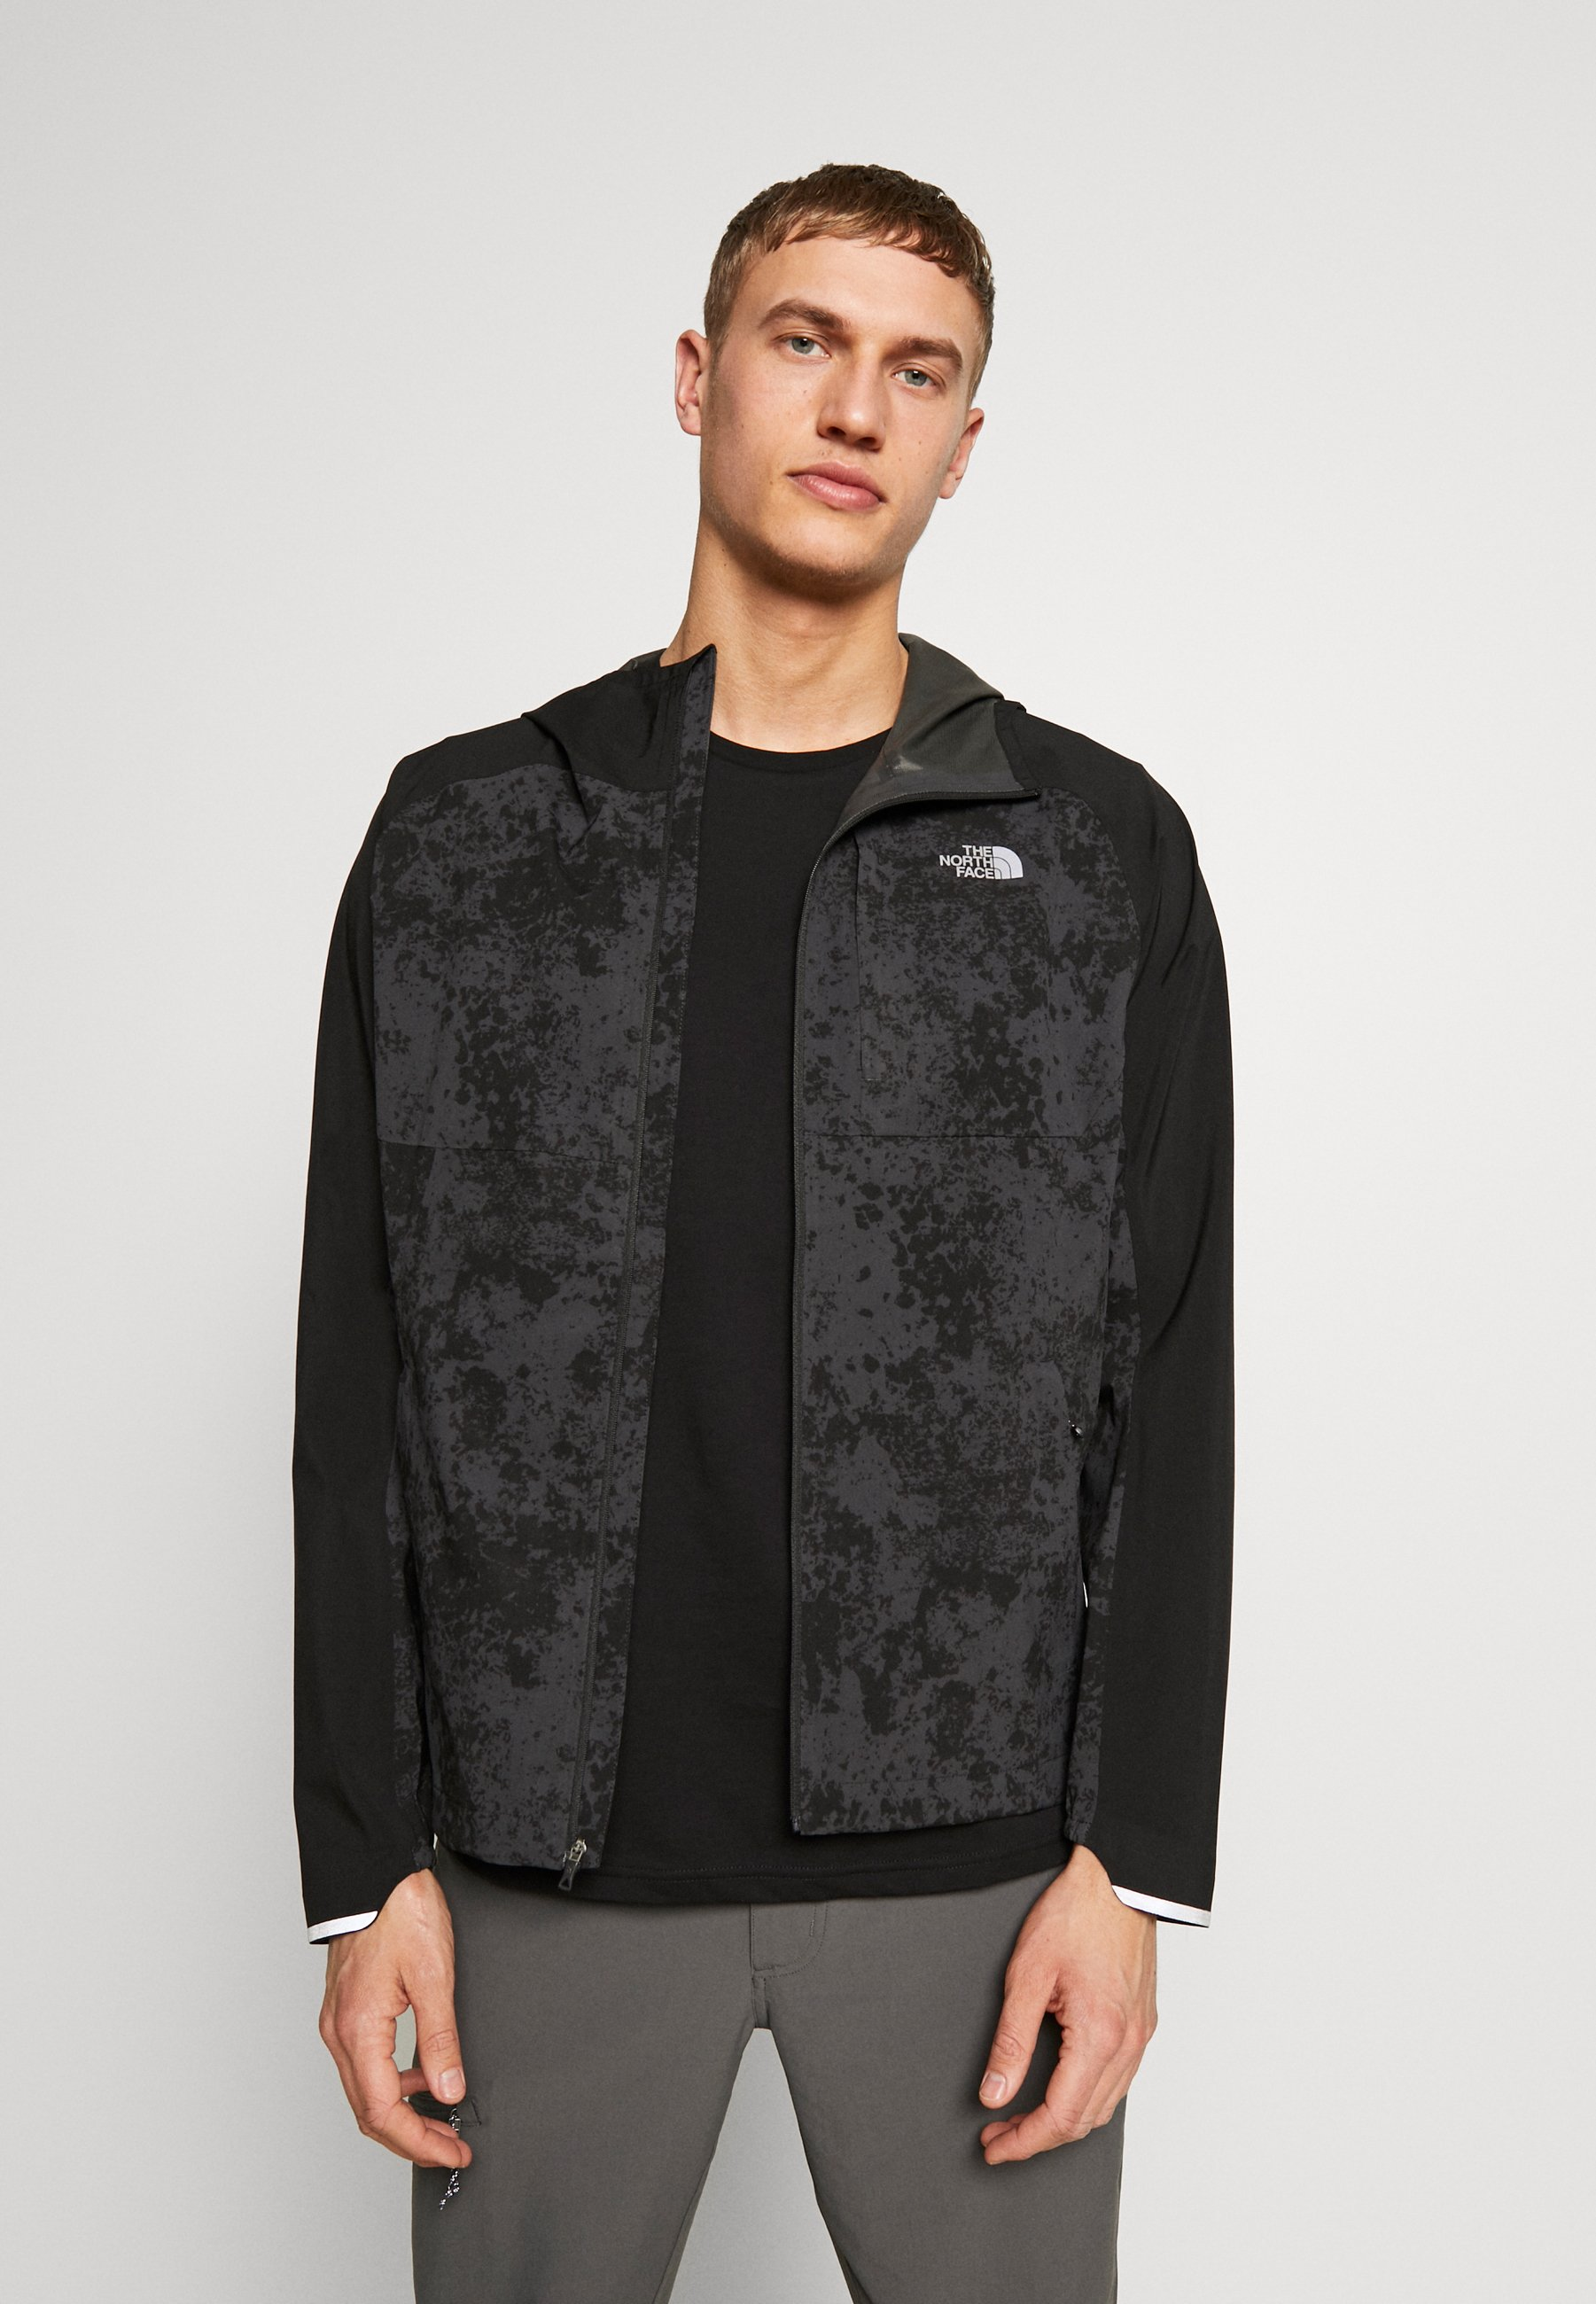 The North Face Mens Ambition Jacket - Giacca Outdoor Dark Grey/black dnreQbU